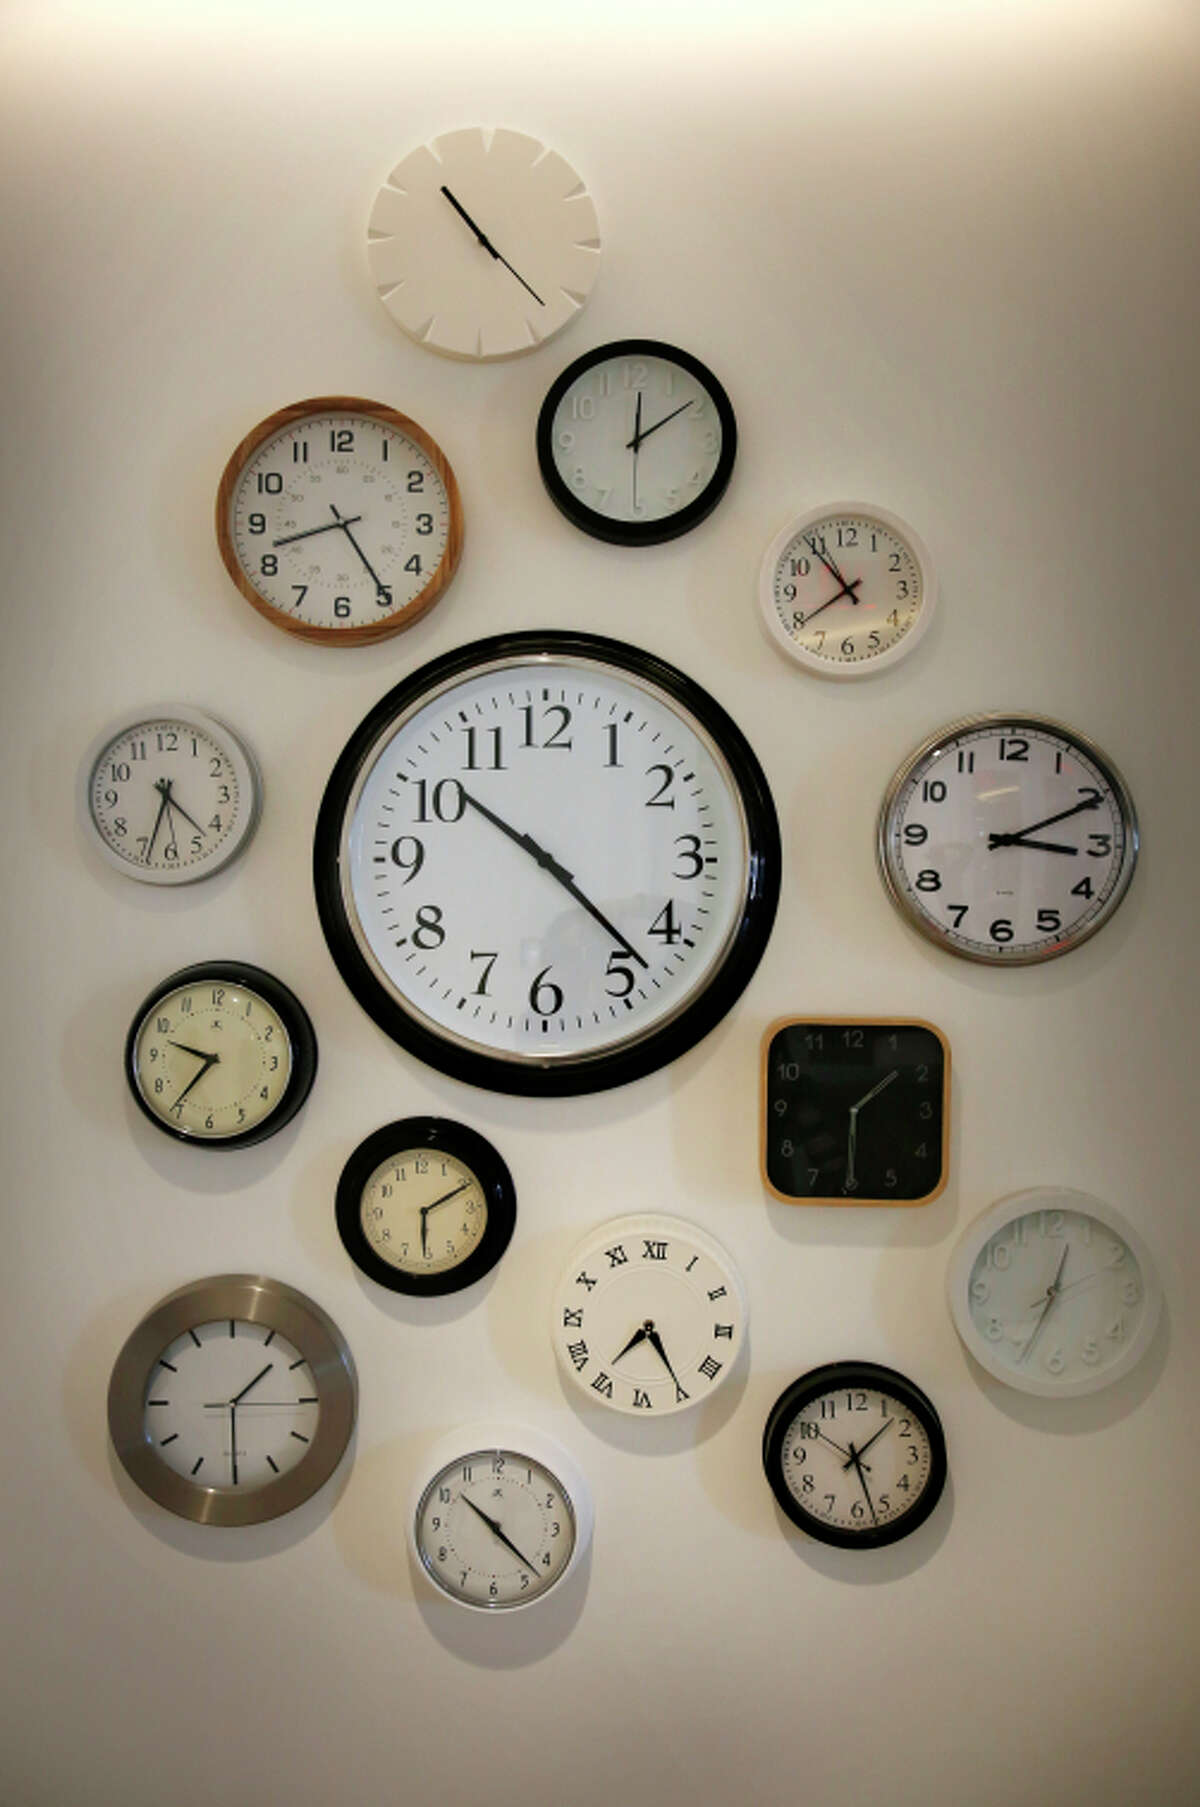 A variety of clocks decorate a wall at the Trulia offices, designed to avoid traditional, old-fashioned corporate decor conventions.